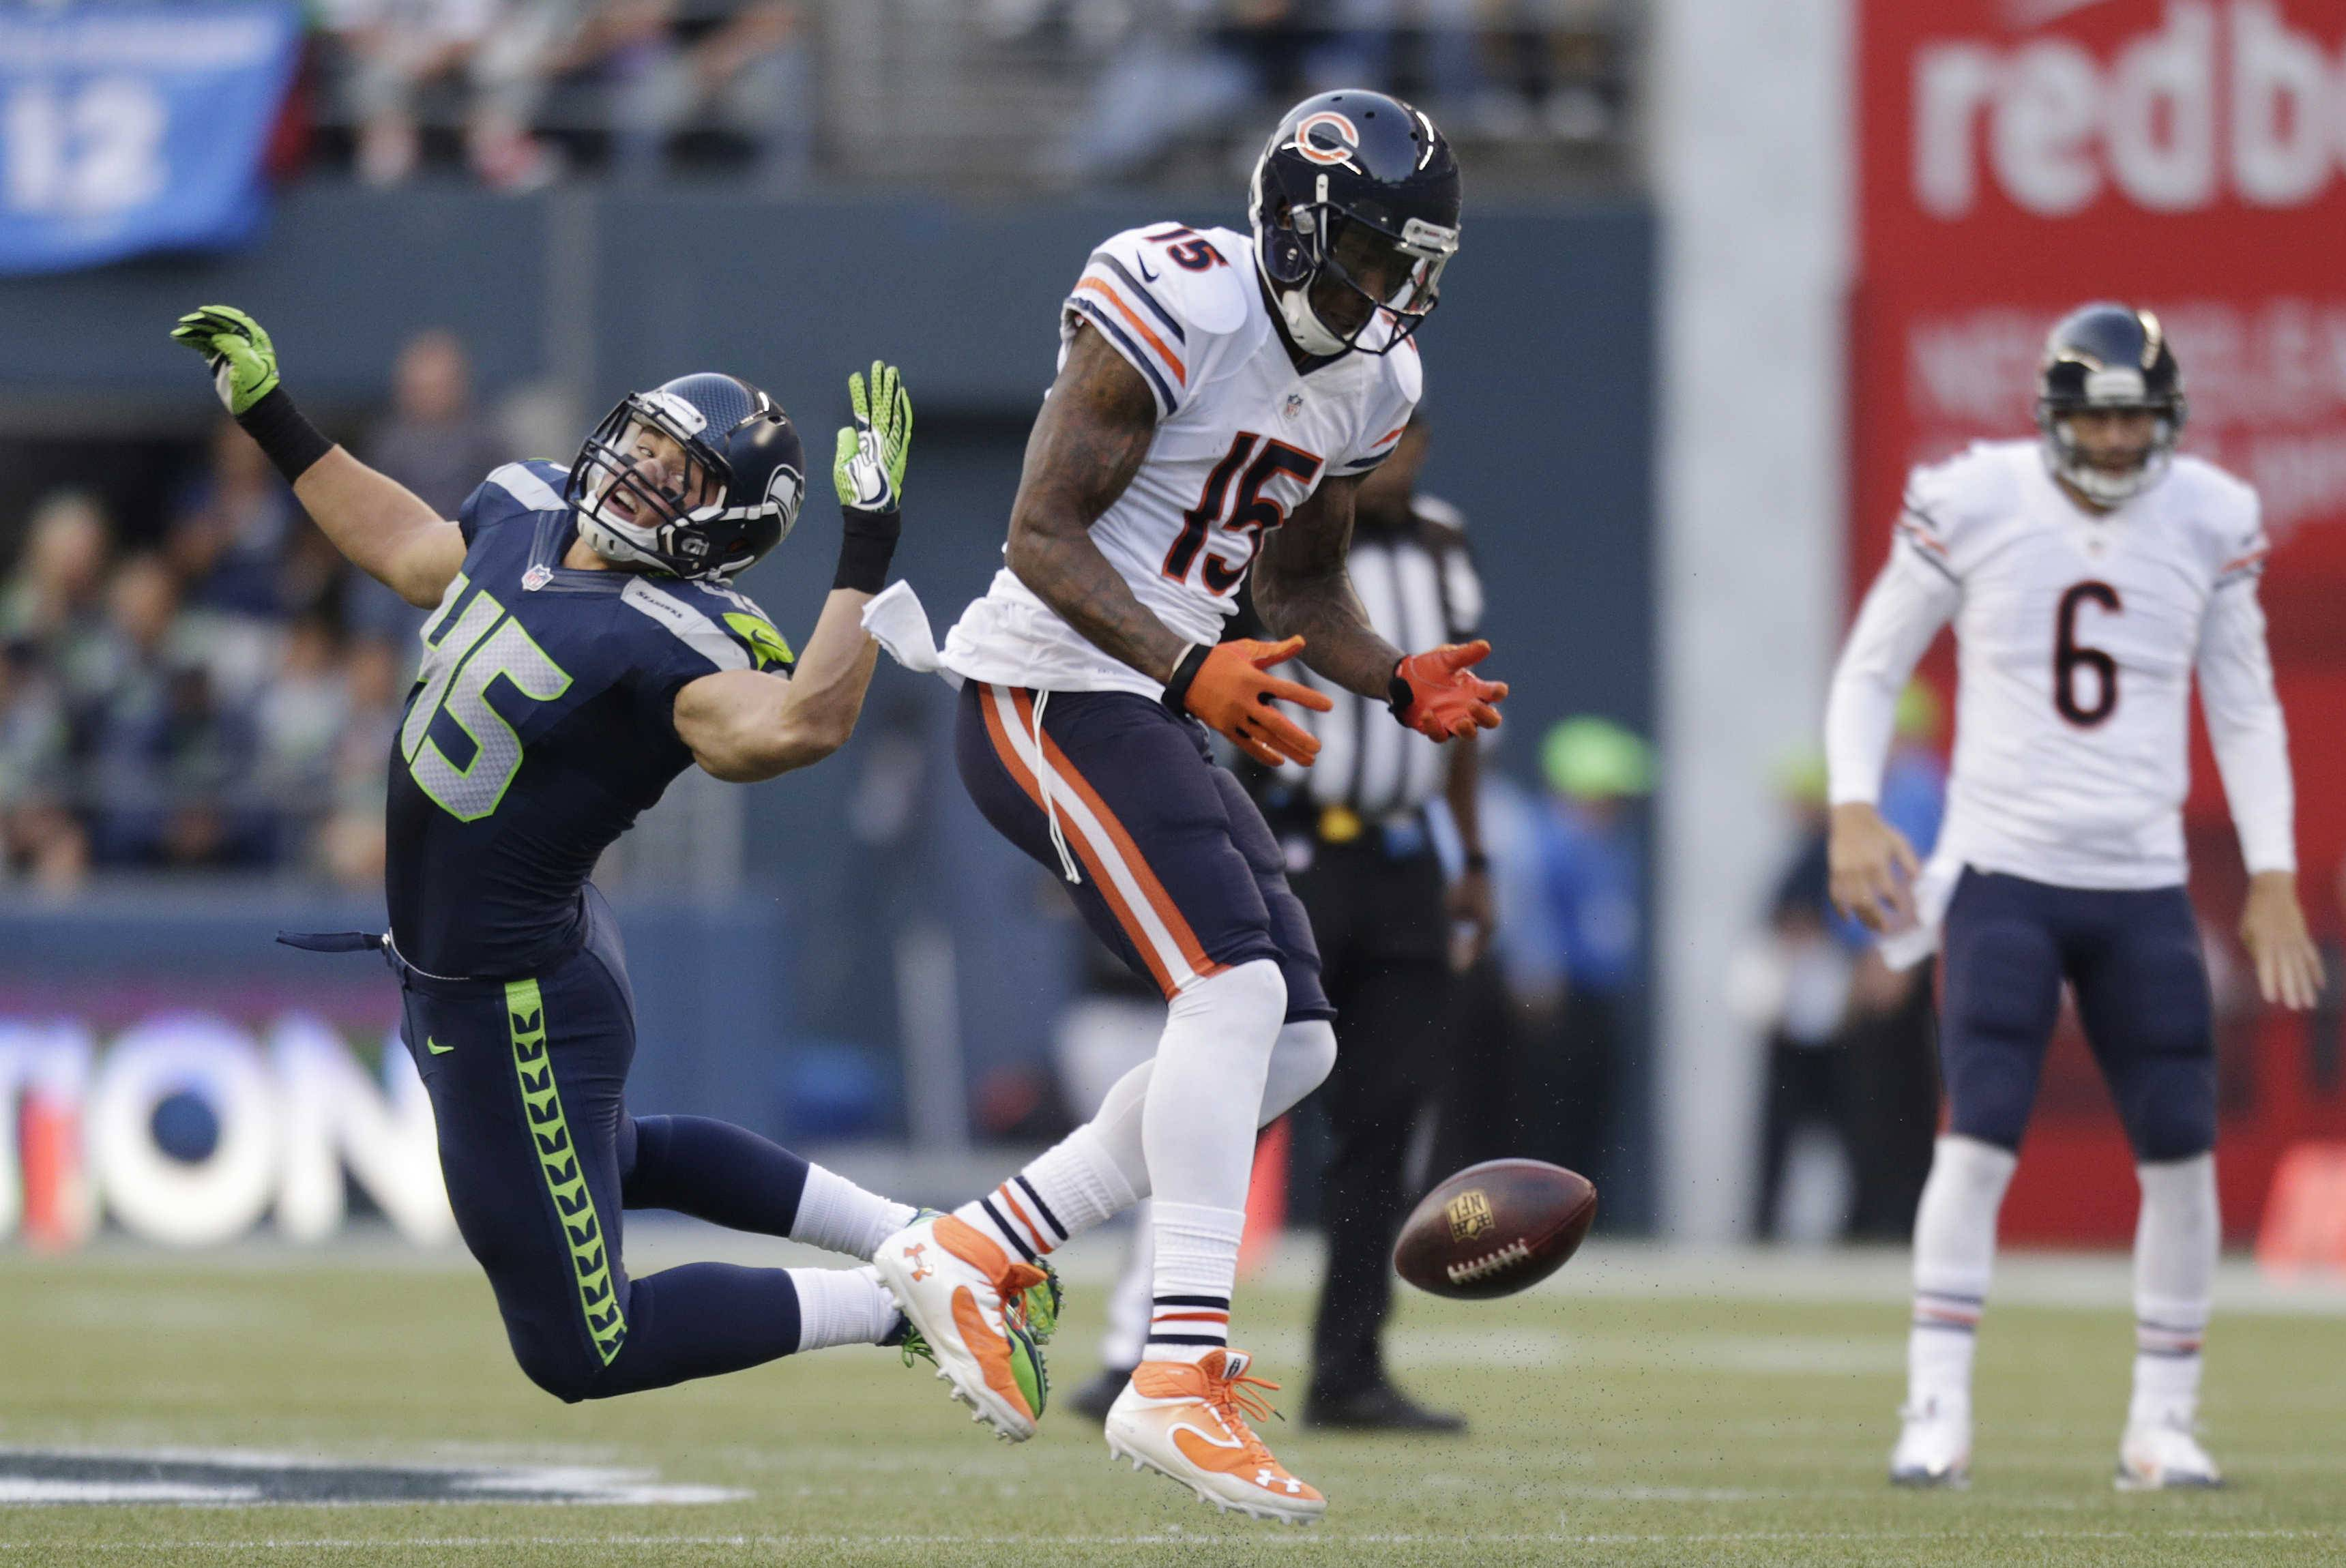 Chicago Bears' Brandon Marshall (15) can't hold on to the ball as quarterback Jay Cutler (6) watches and Seattle Seahawks' Brock Coyle defends in the first half .